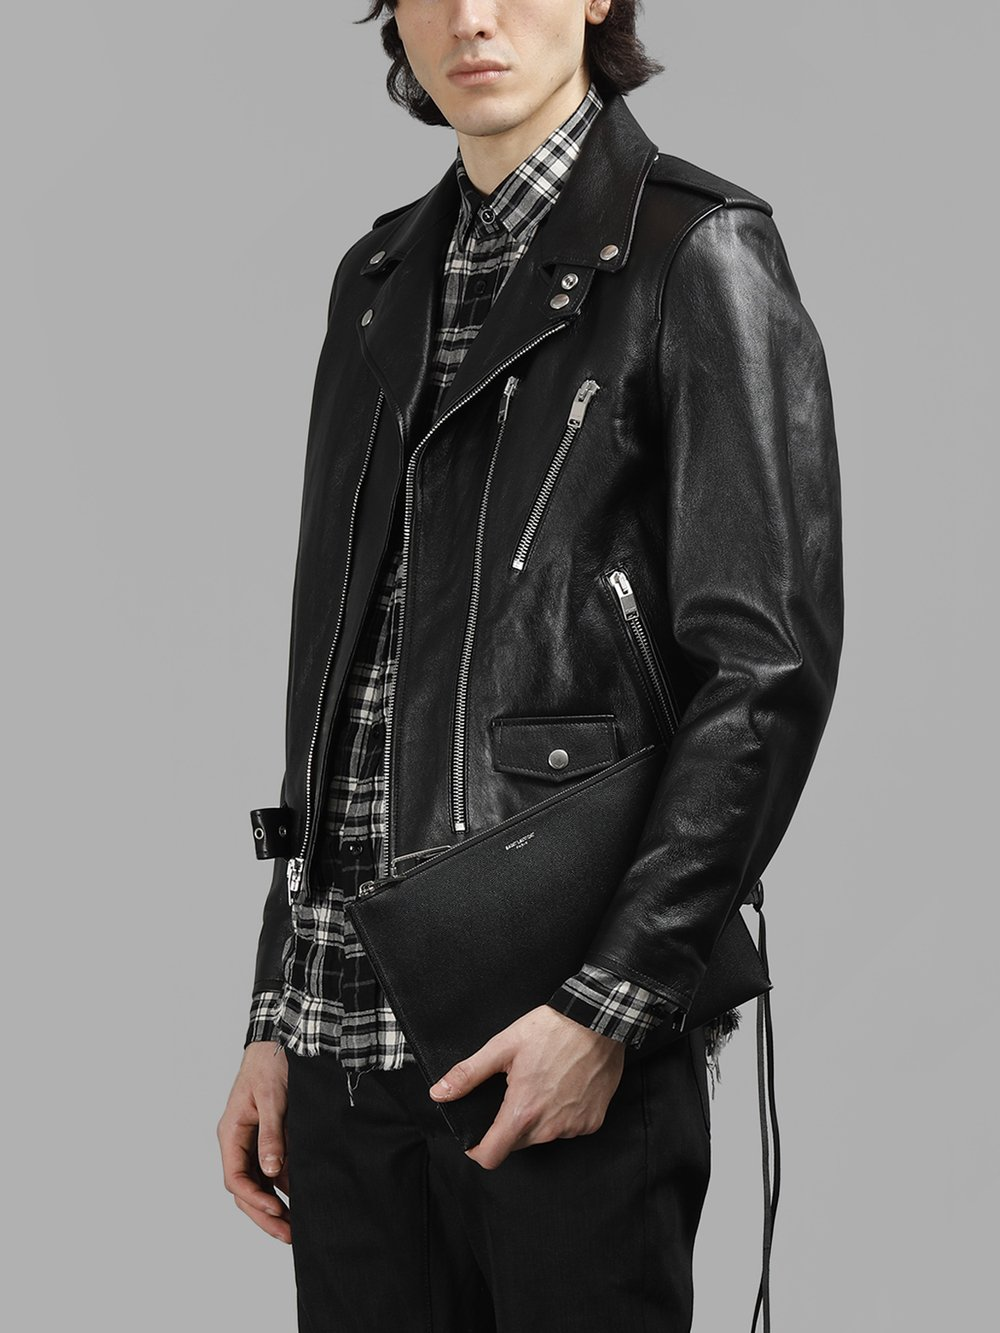 SAINT LAURENT PARIS LEATHER JACKETS